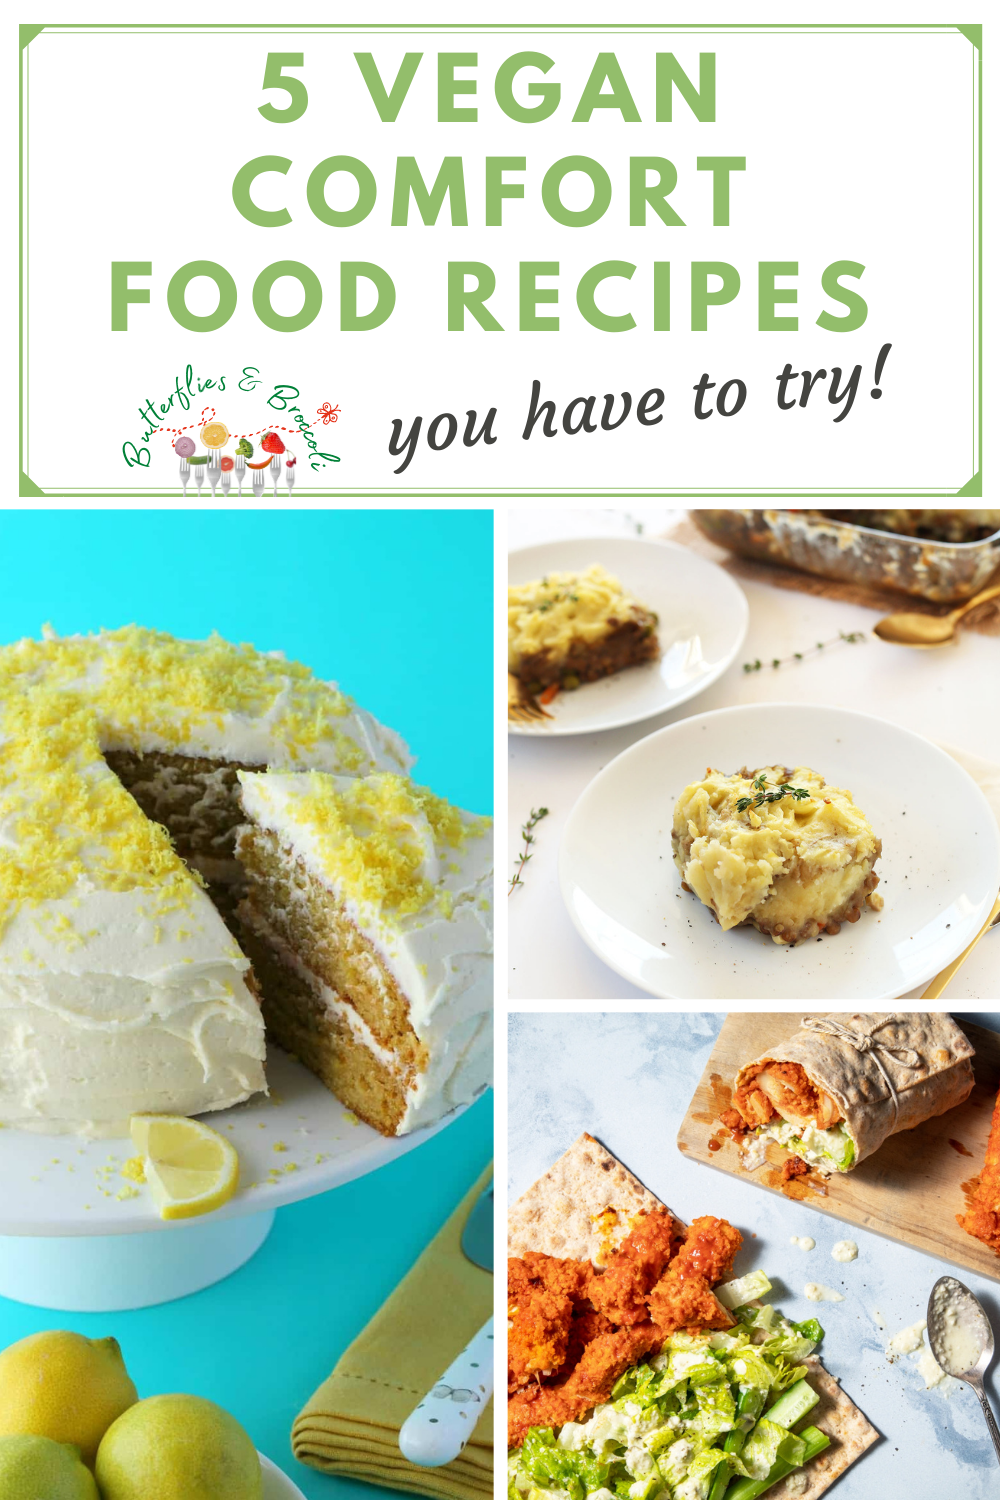 image of lemon cake shepherd's pie with text 5 vegan comfort food recipes you have to try